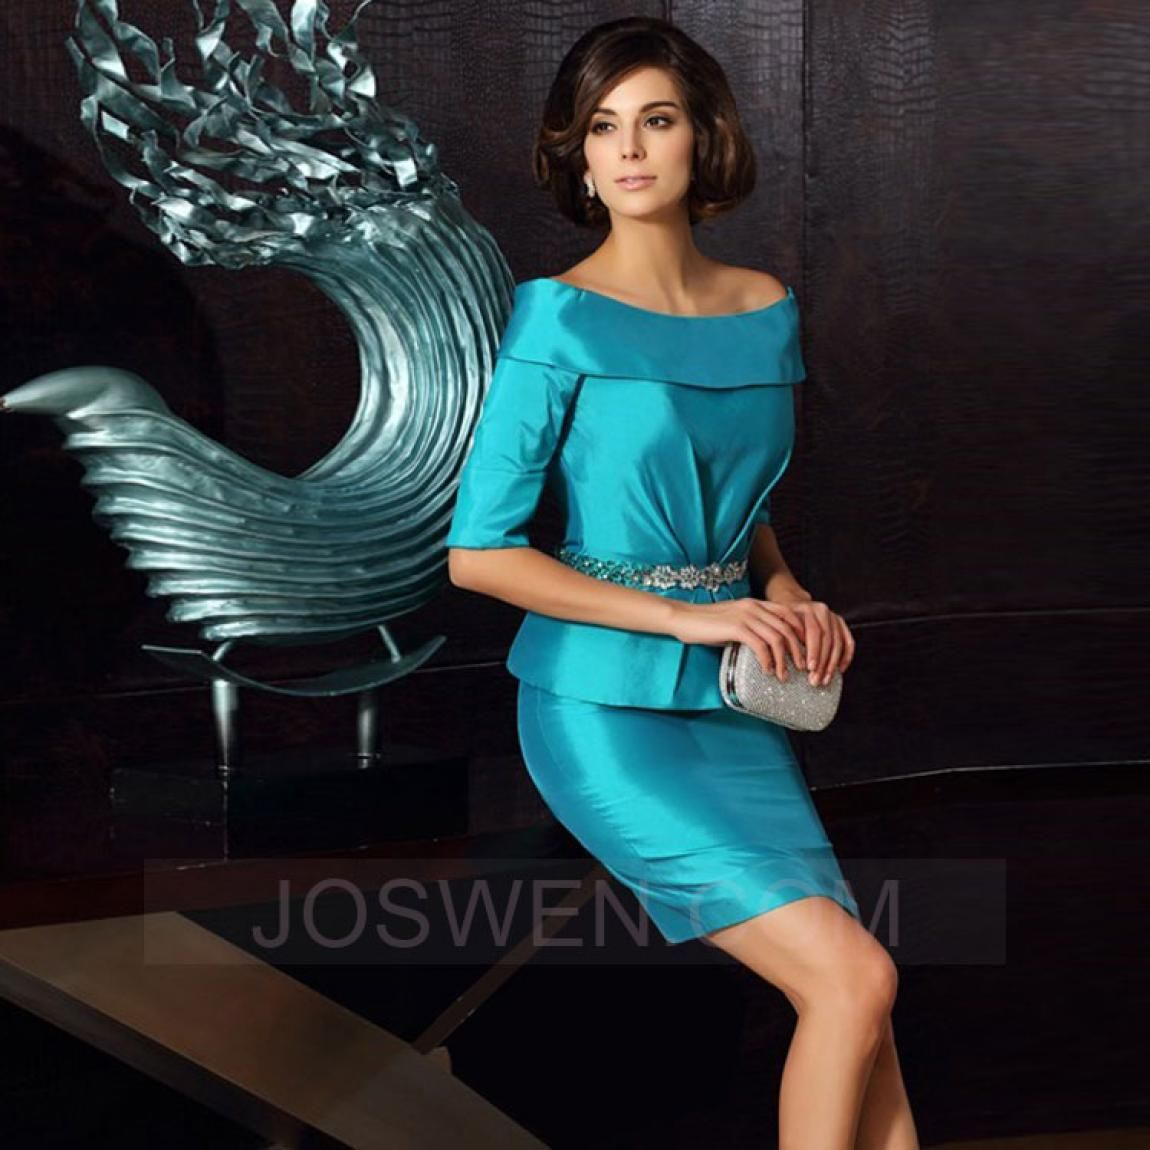 ef2c8094751 Joswen Dresses for Weddings and Special Occasions - Sheath Off-the-shoulder  Short Taffeta Mother Of The Bride Dress With Rhinestone